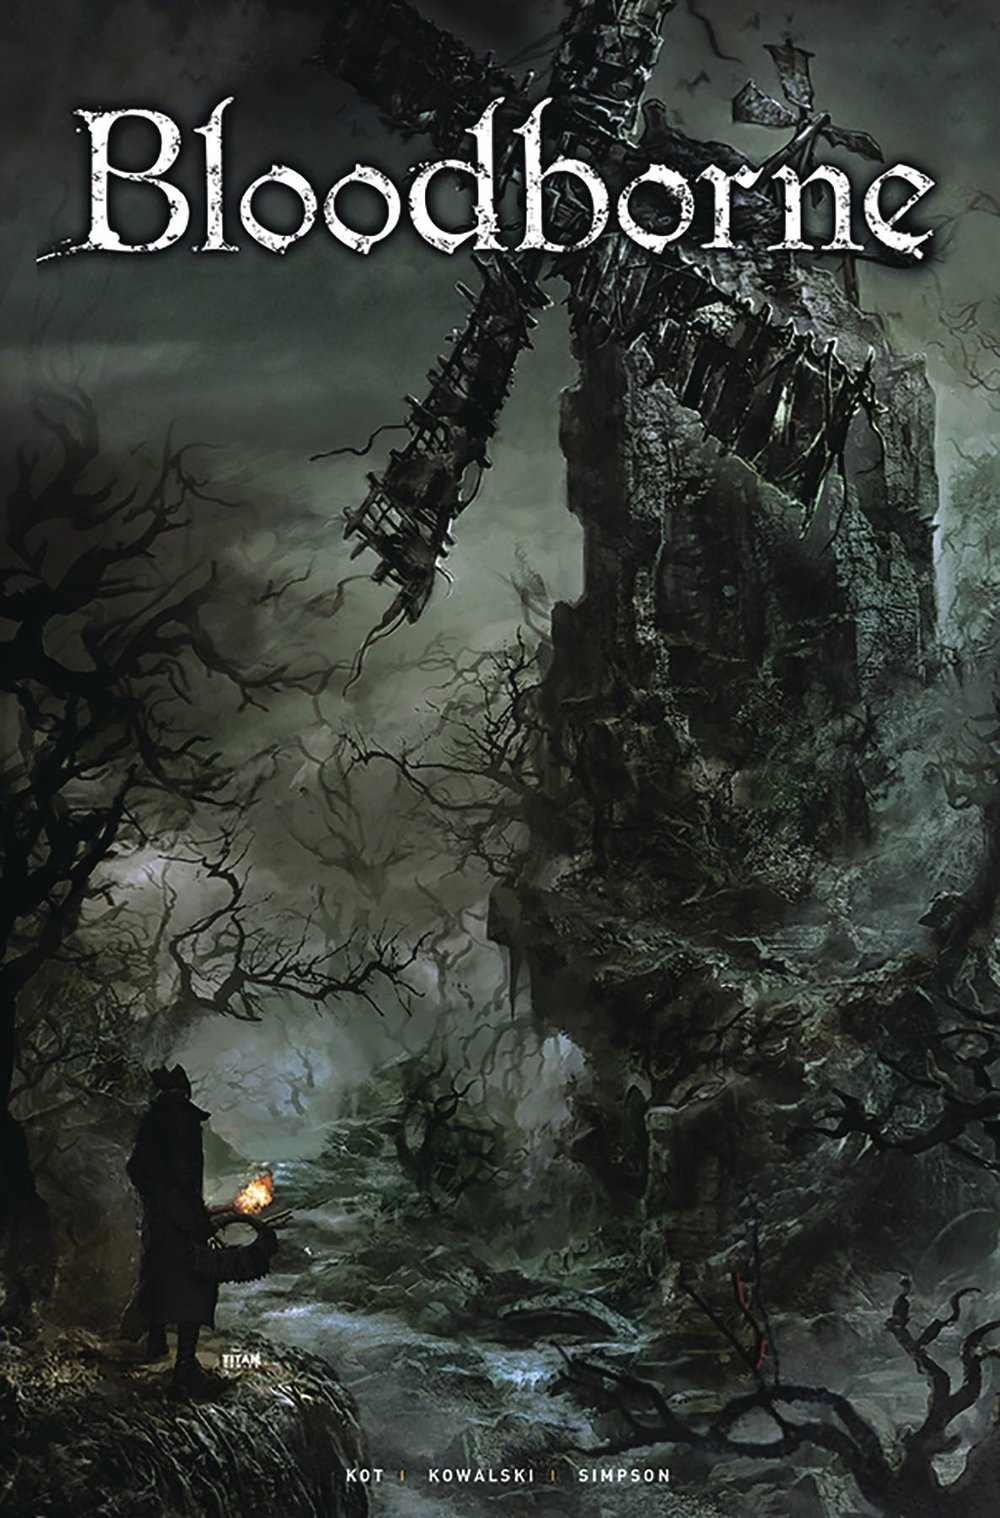 Episode 27 Variant of the Week! - (Titan Books) Bloodborne #2Cover by Piotr KowalskiWritten by Ales KotDid the Content Match the Drapes? - Yes... as long as you've played the game.